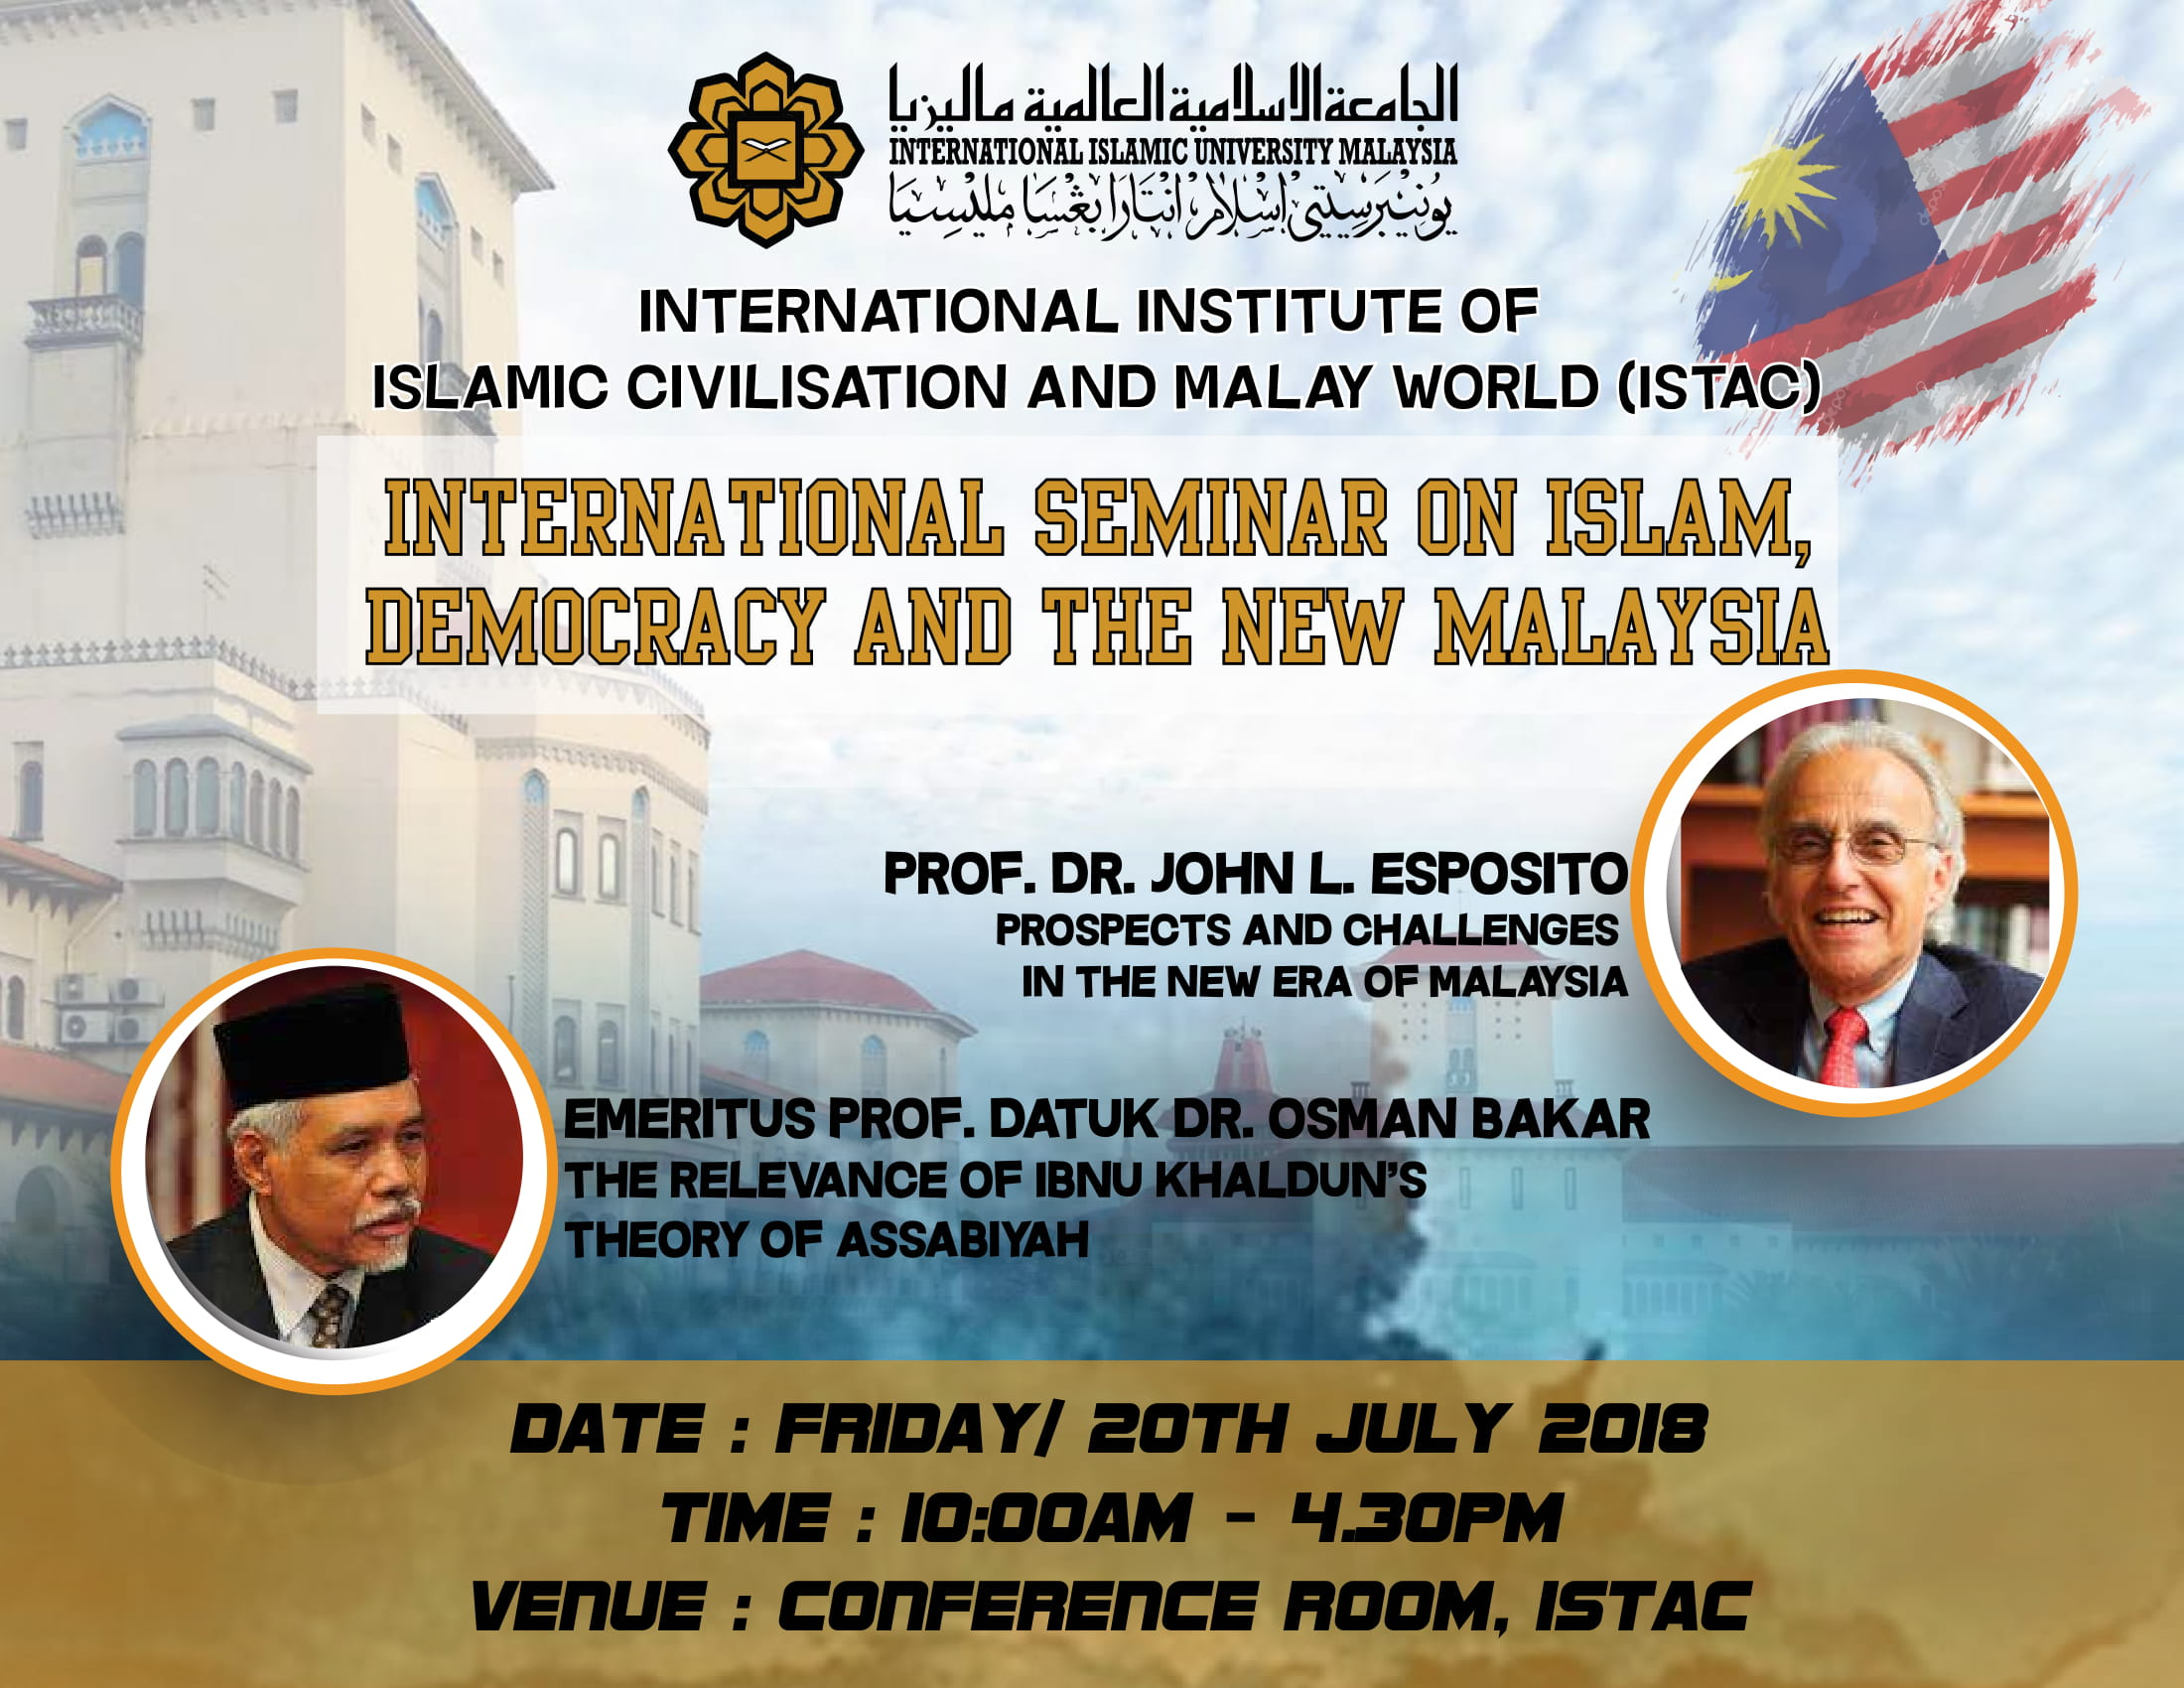 International Seminar on Islam, Democracy and the new Malaysia